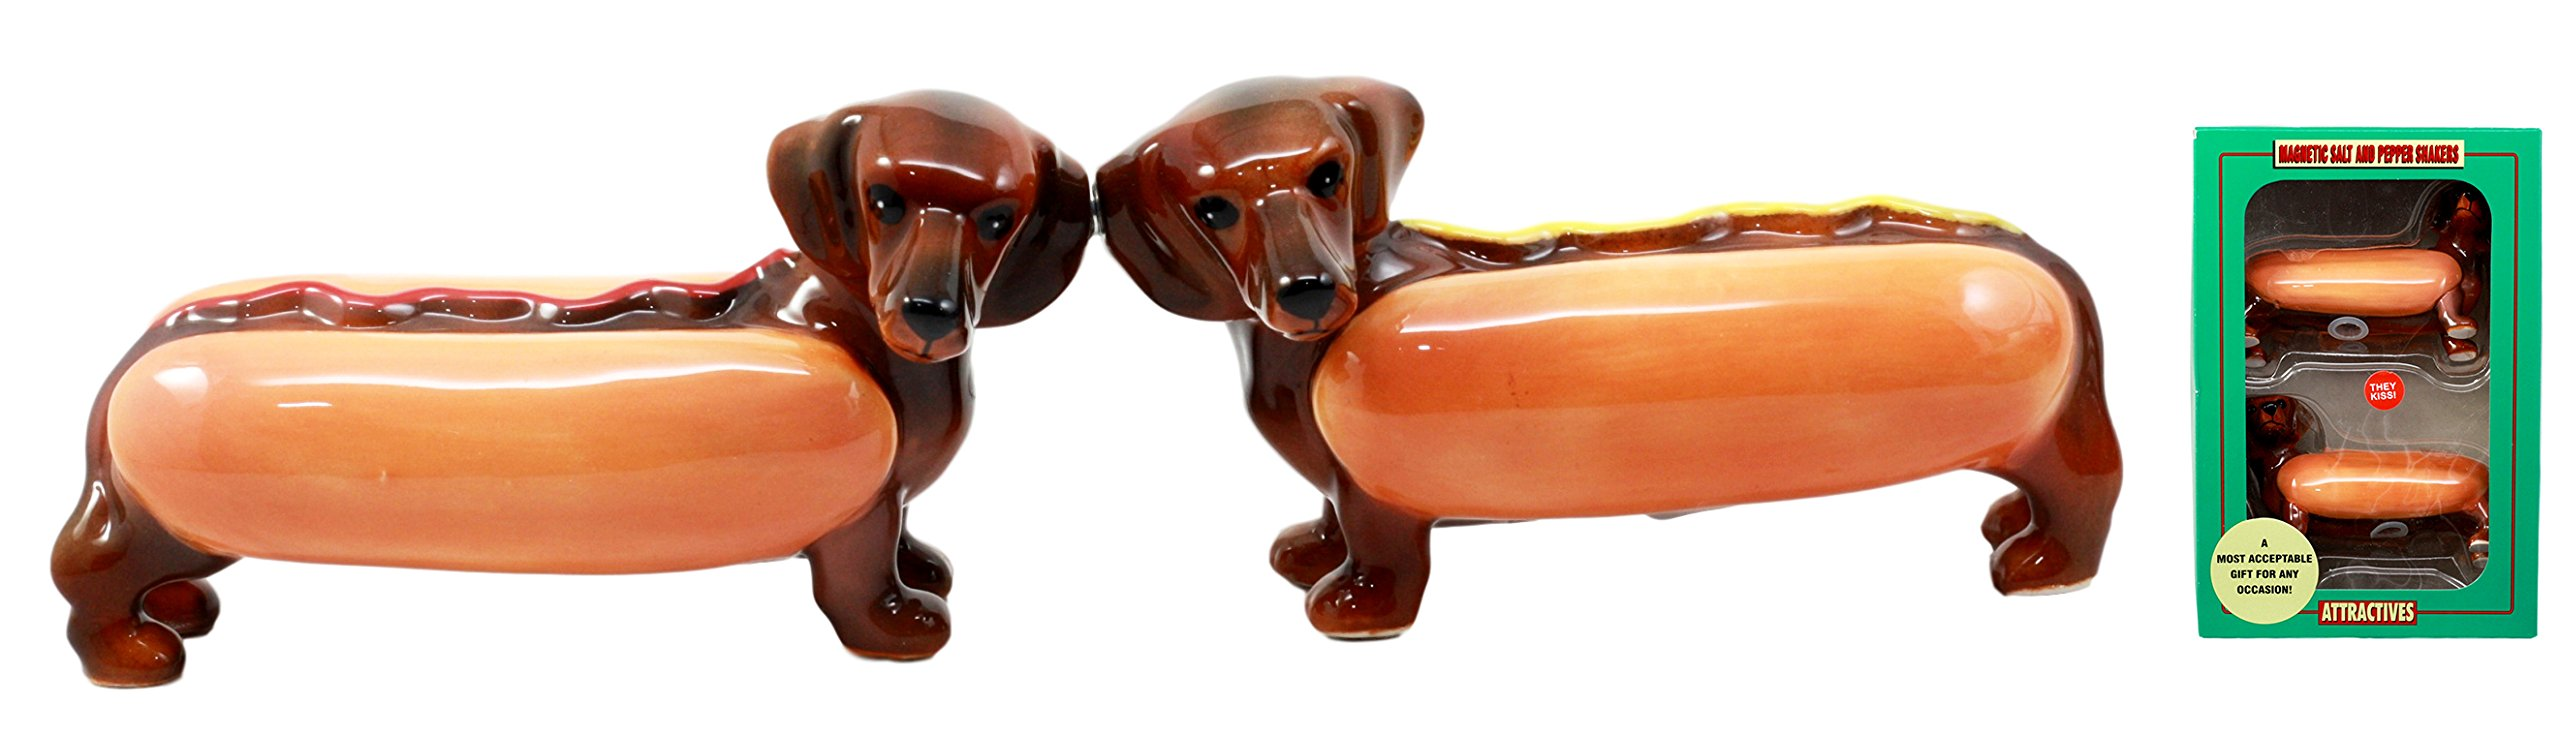 Ebros Doxies Collection Hot Dog Sausage Wiener Dachshunds Salt And Pepper Shakers Ceramic Magnetic Figurine Set 4.75''L